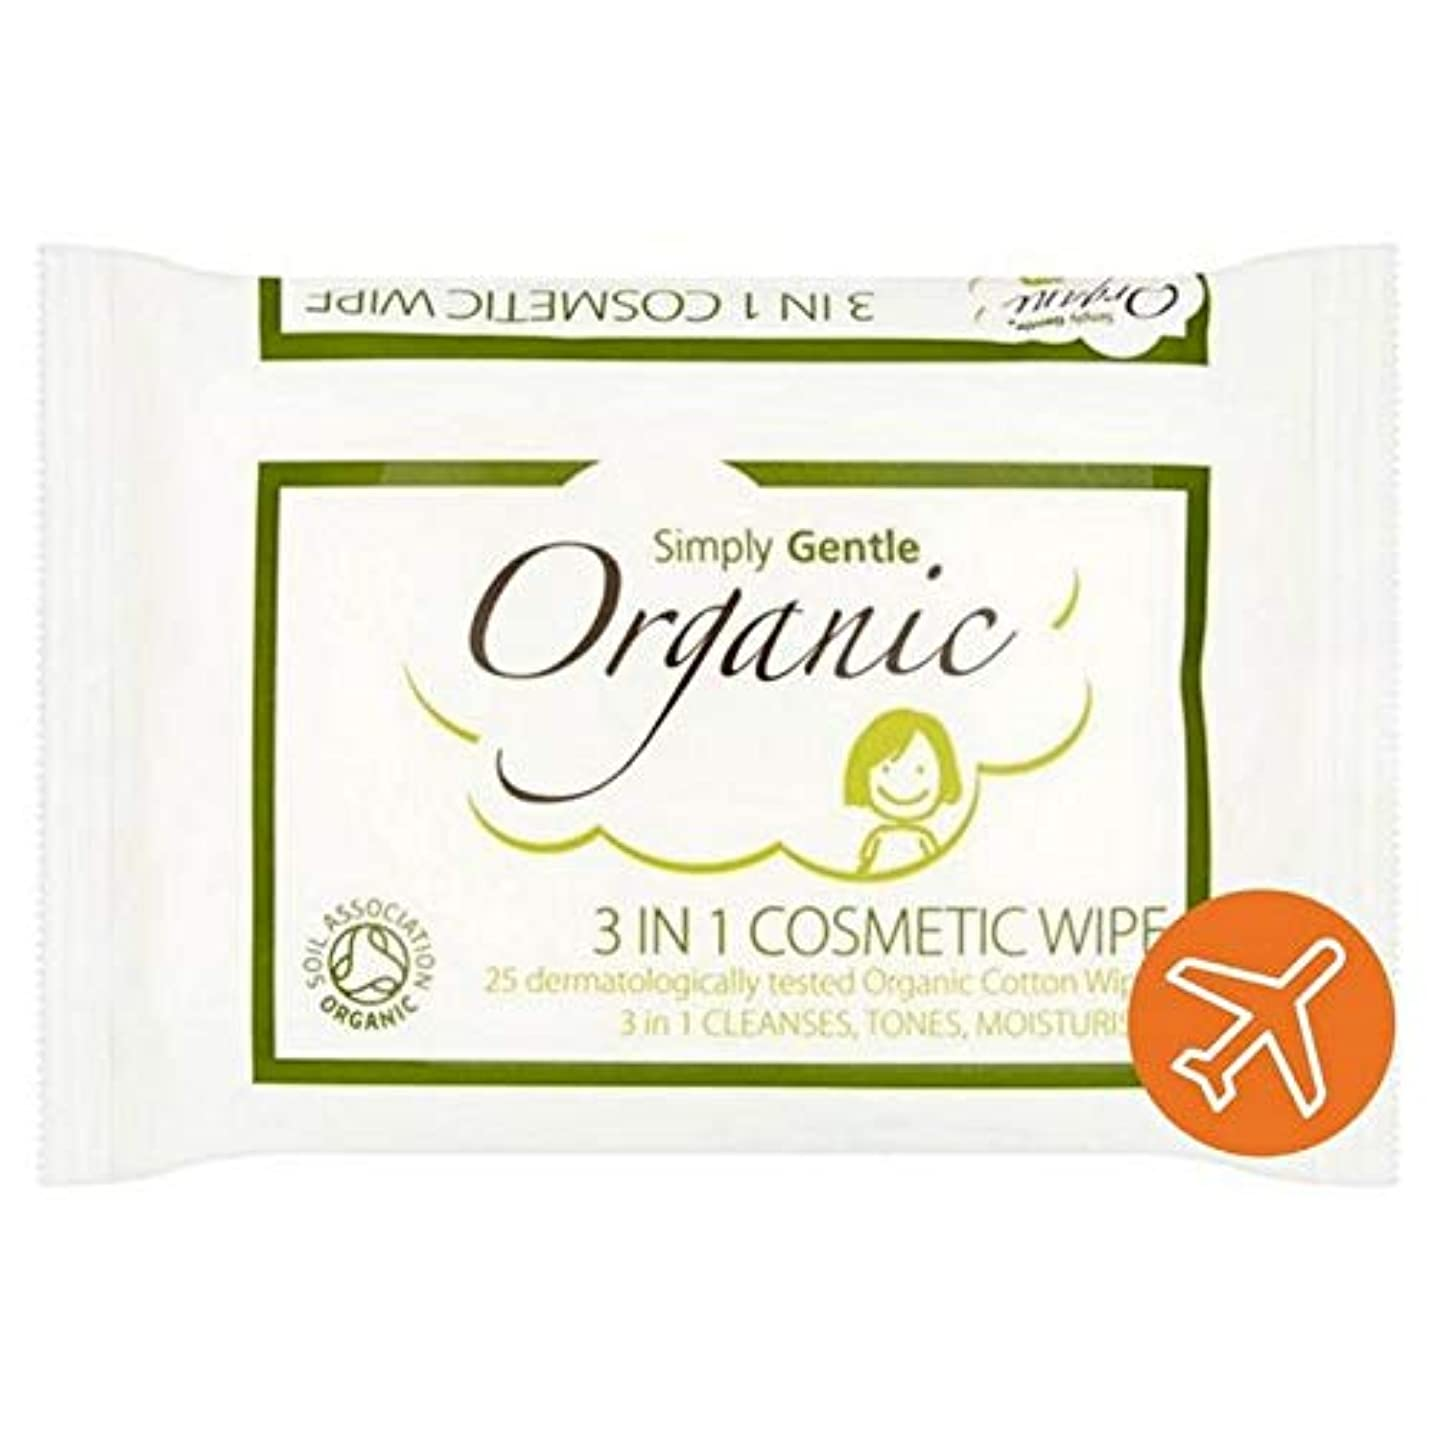 [Simply Gentle ] 単に優しい有機顔パックごとに25を拭きます - Simply Gentle Organic Face Wipe 25 per pack [並行輸入品]